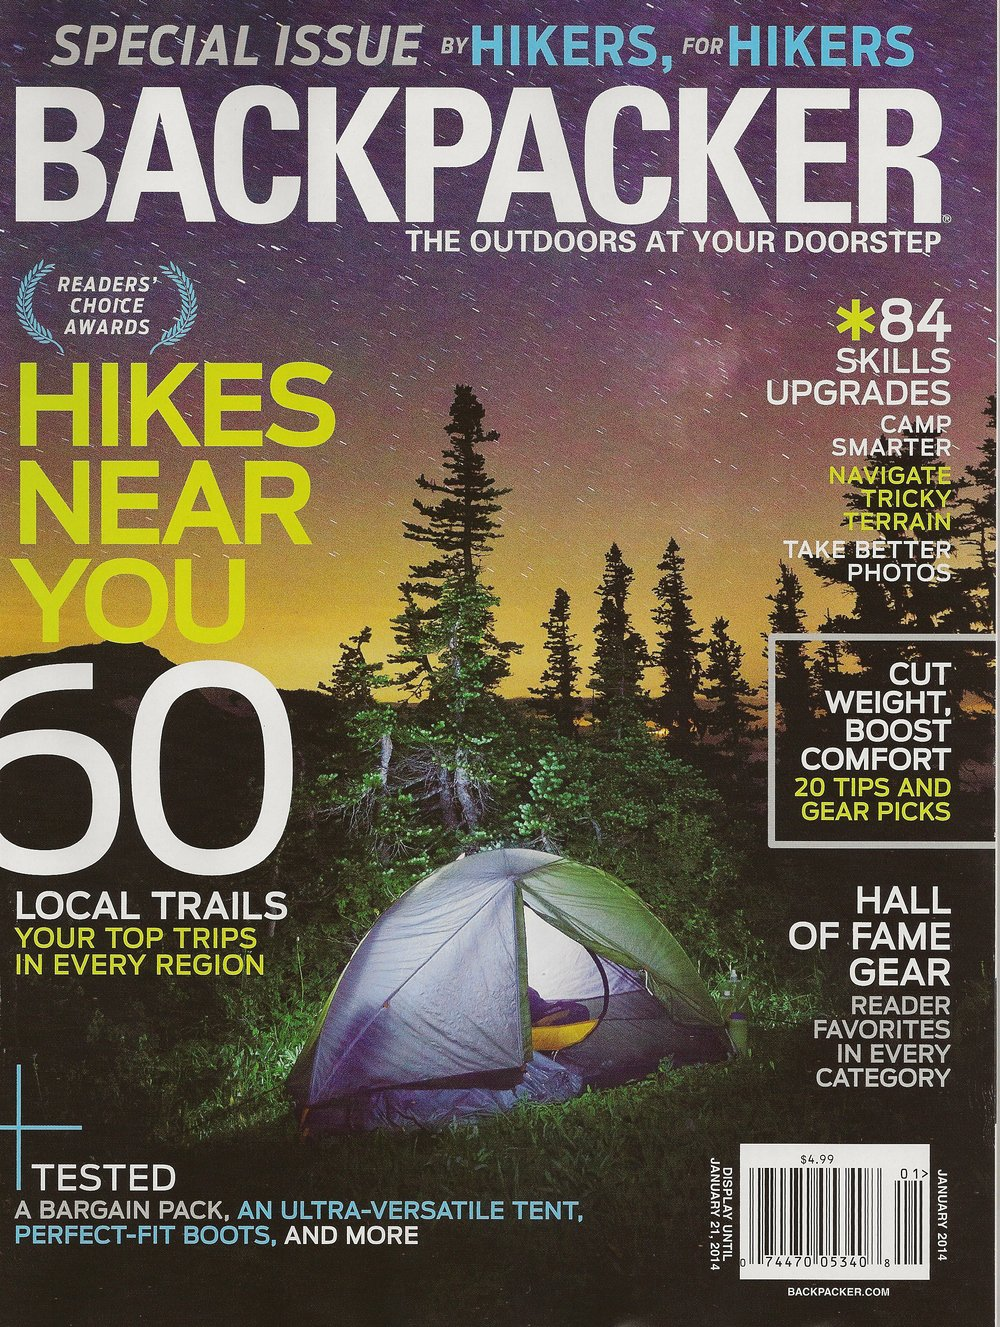 South Region - Reader's Choice BACKPACKER magazine - January 2014